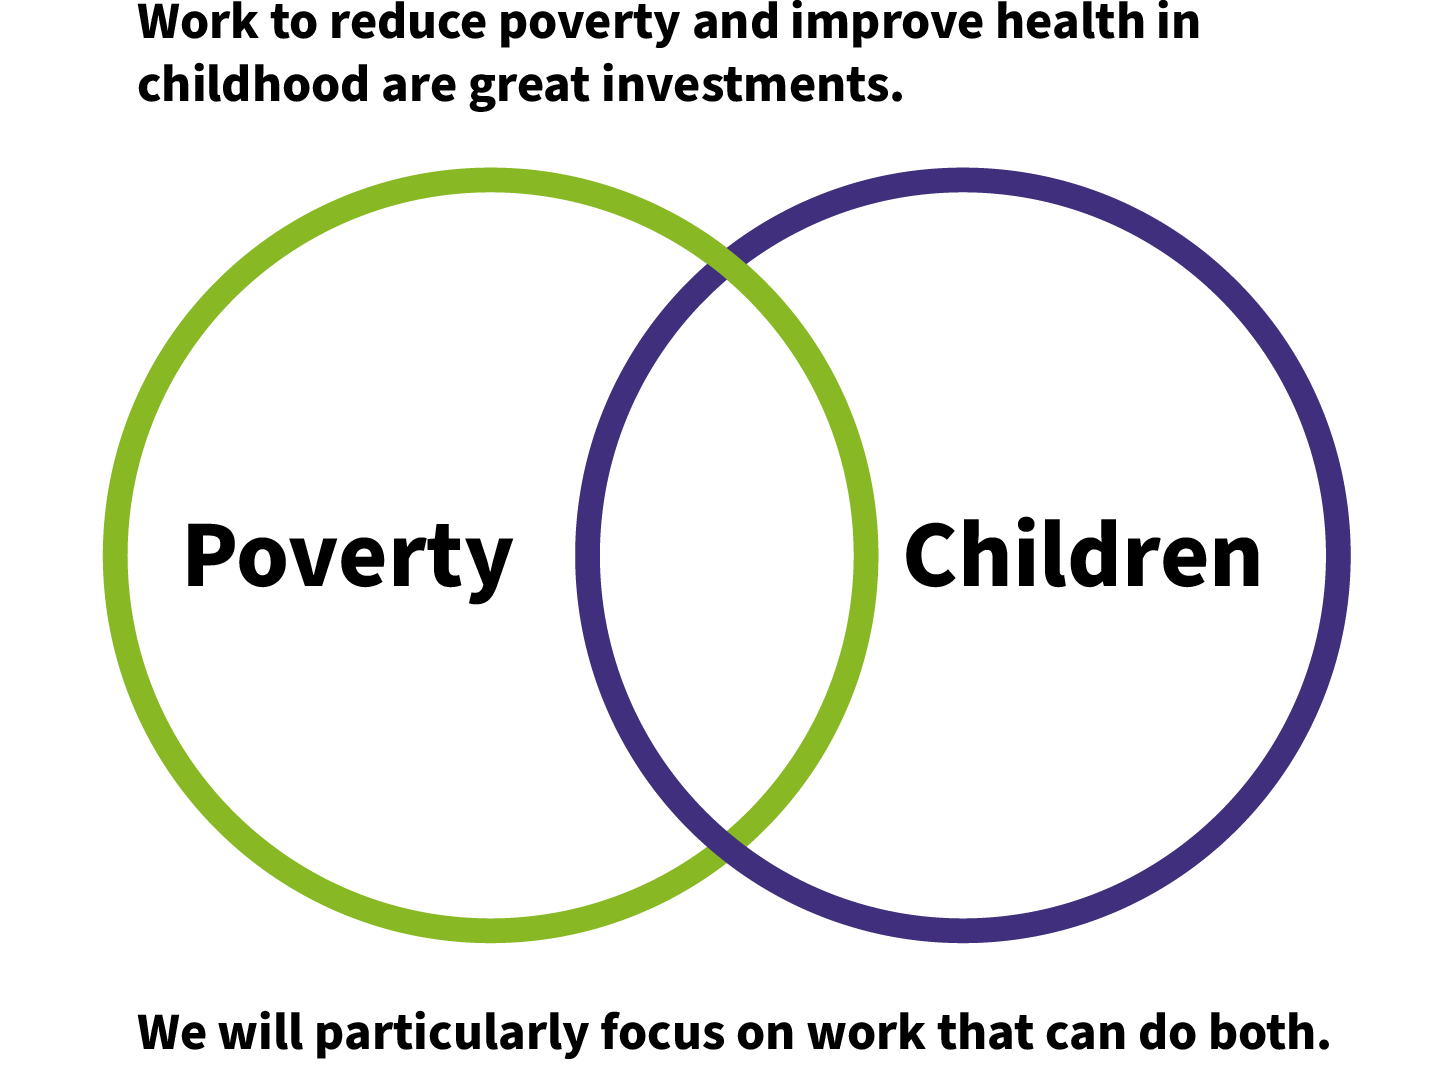 Overlapping circles displaying link between poverty and children. Work to reduce poverty and improve health in childhood are great investments. We will particularly focus on work that can do both.